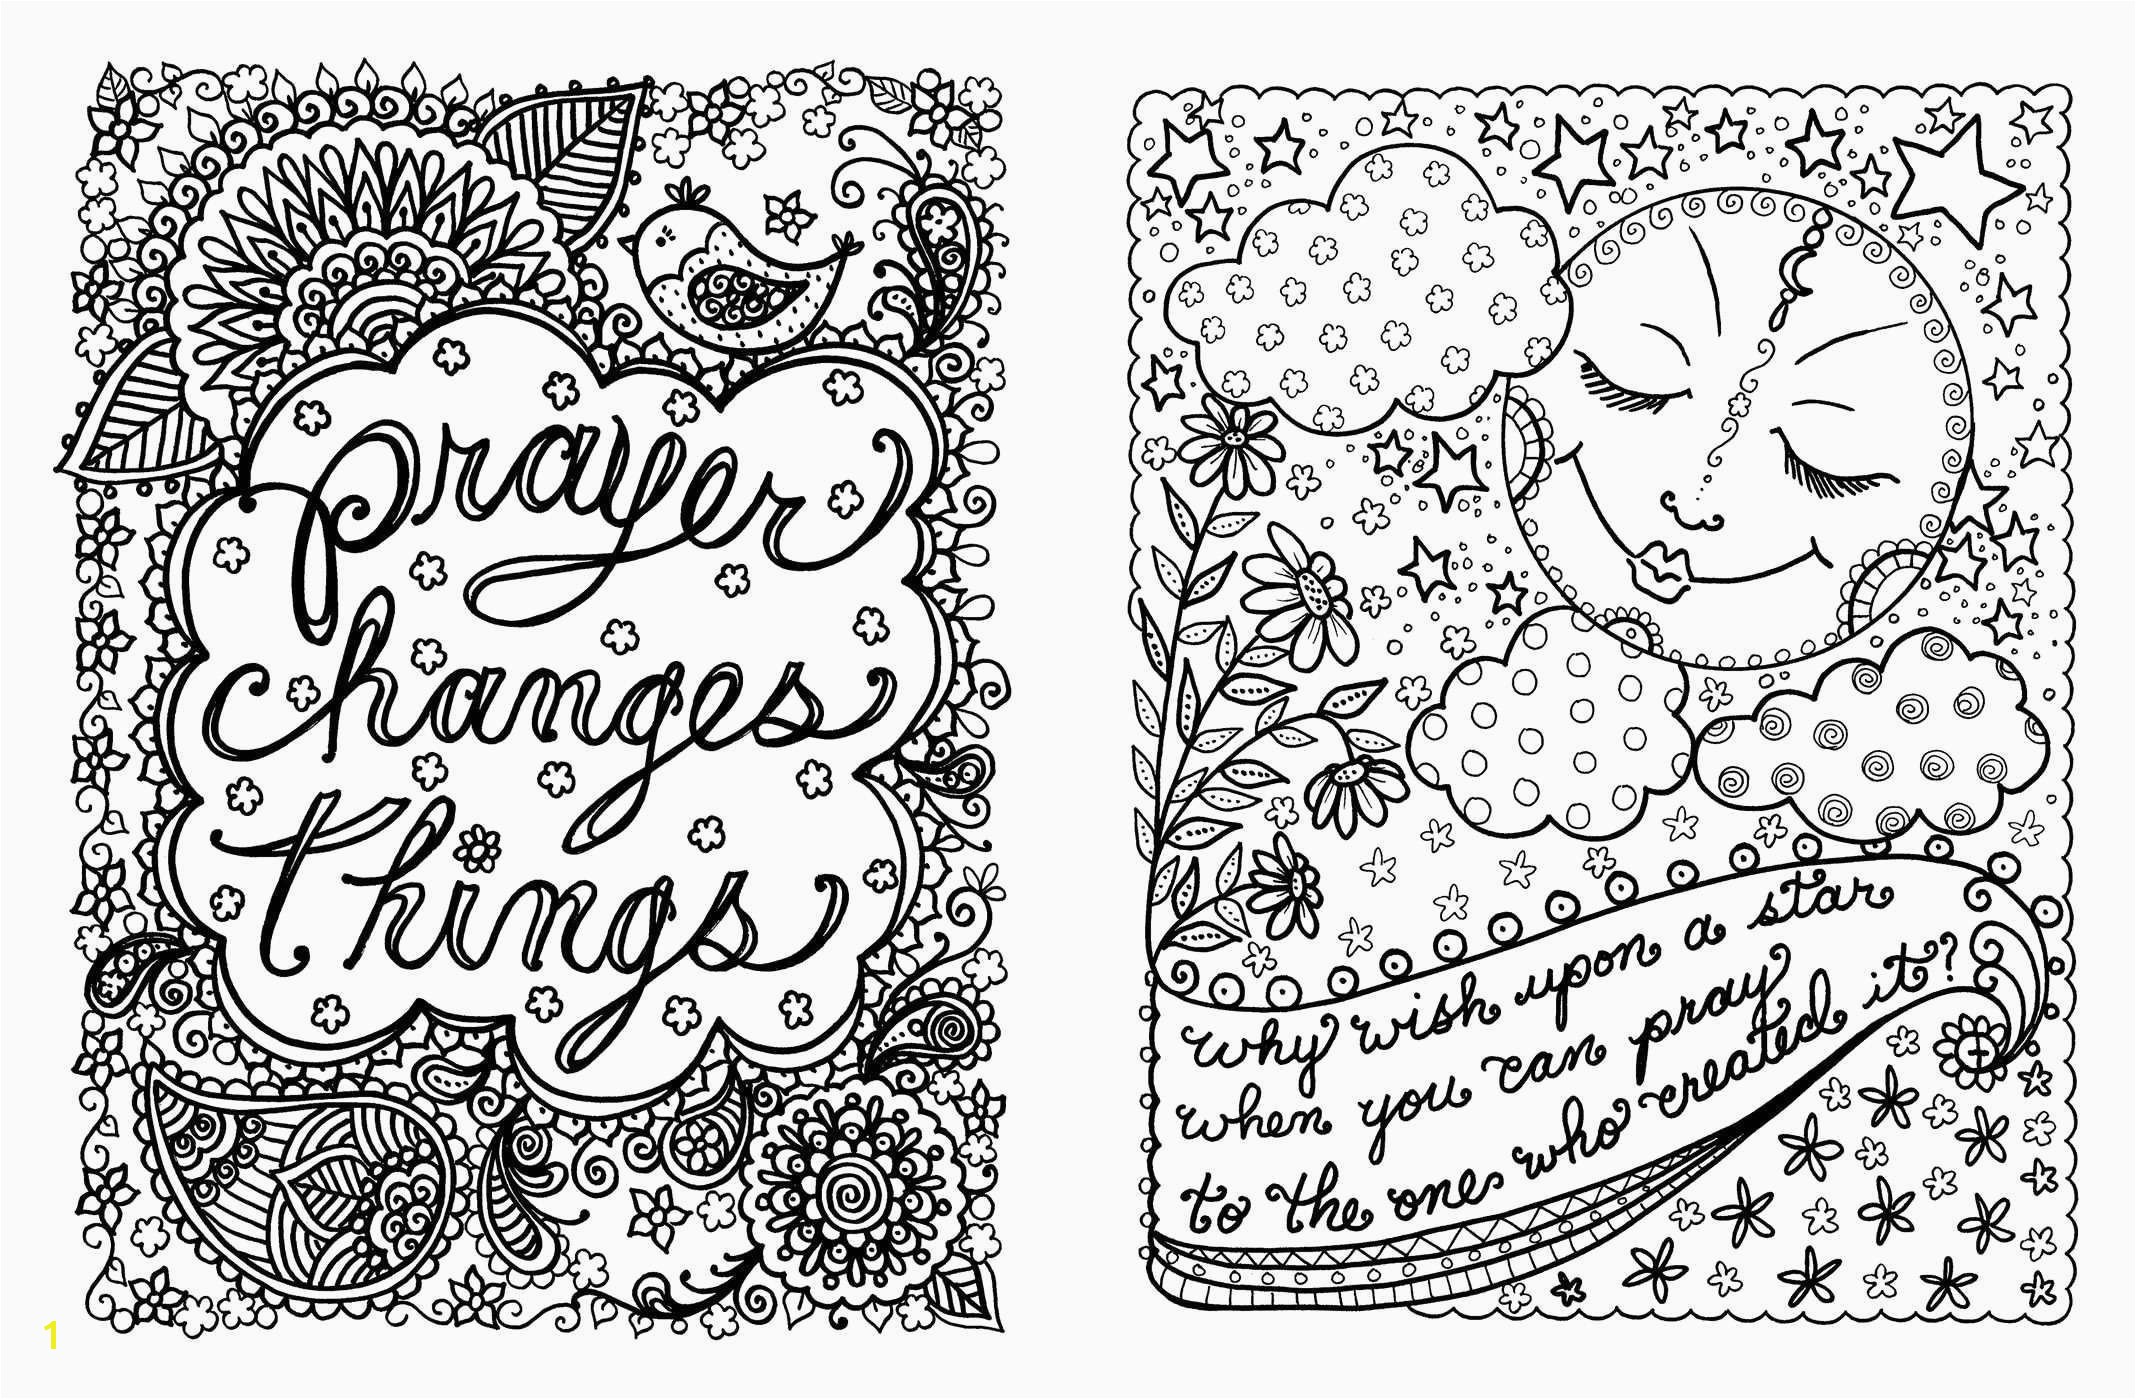 Free Printable Adult Coloring Pages Unique R Rated Coloring Pages Luxury Printable Cds 0d Coloring Page